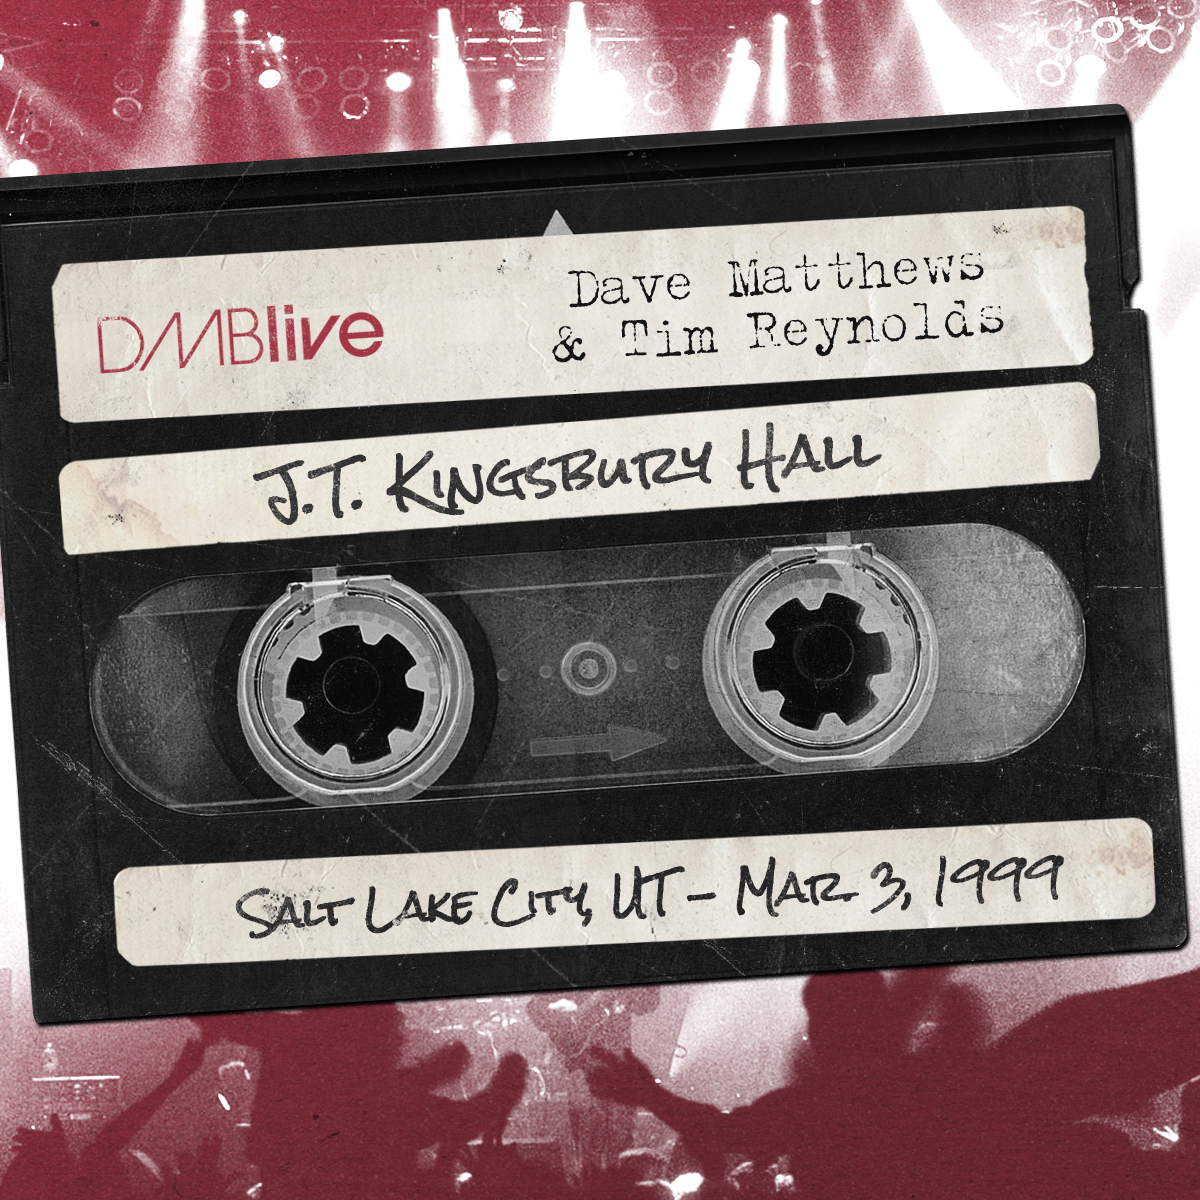 DMBLive J.T. Kingsbury Hall, Salt Lake City, UT, 3/3/1999